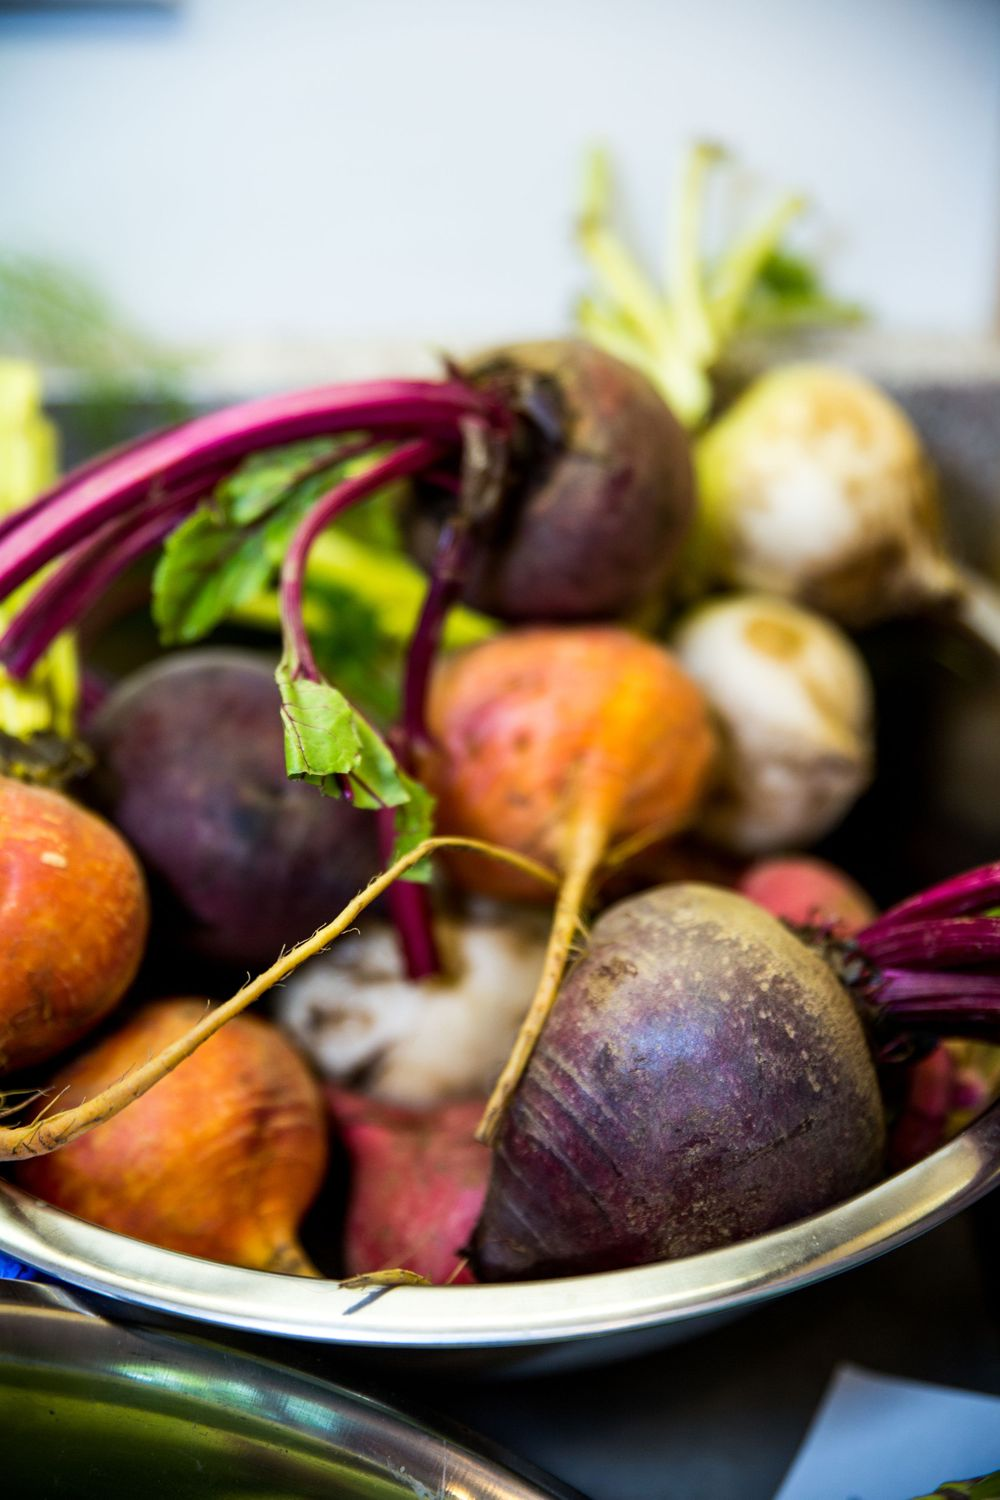 Stainless steel bowl of rainbow beets by Basil, Garlic & Rosemary Cooking Classes based in Annapolis, MD. | DANIE